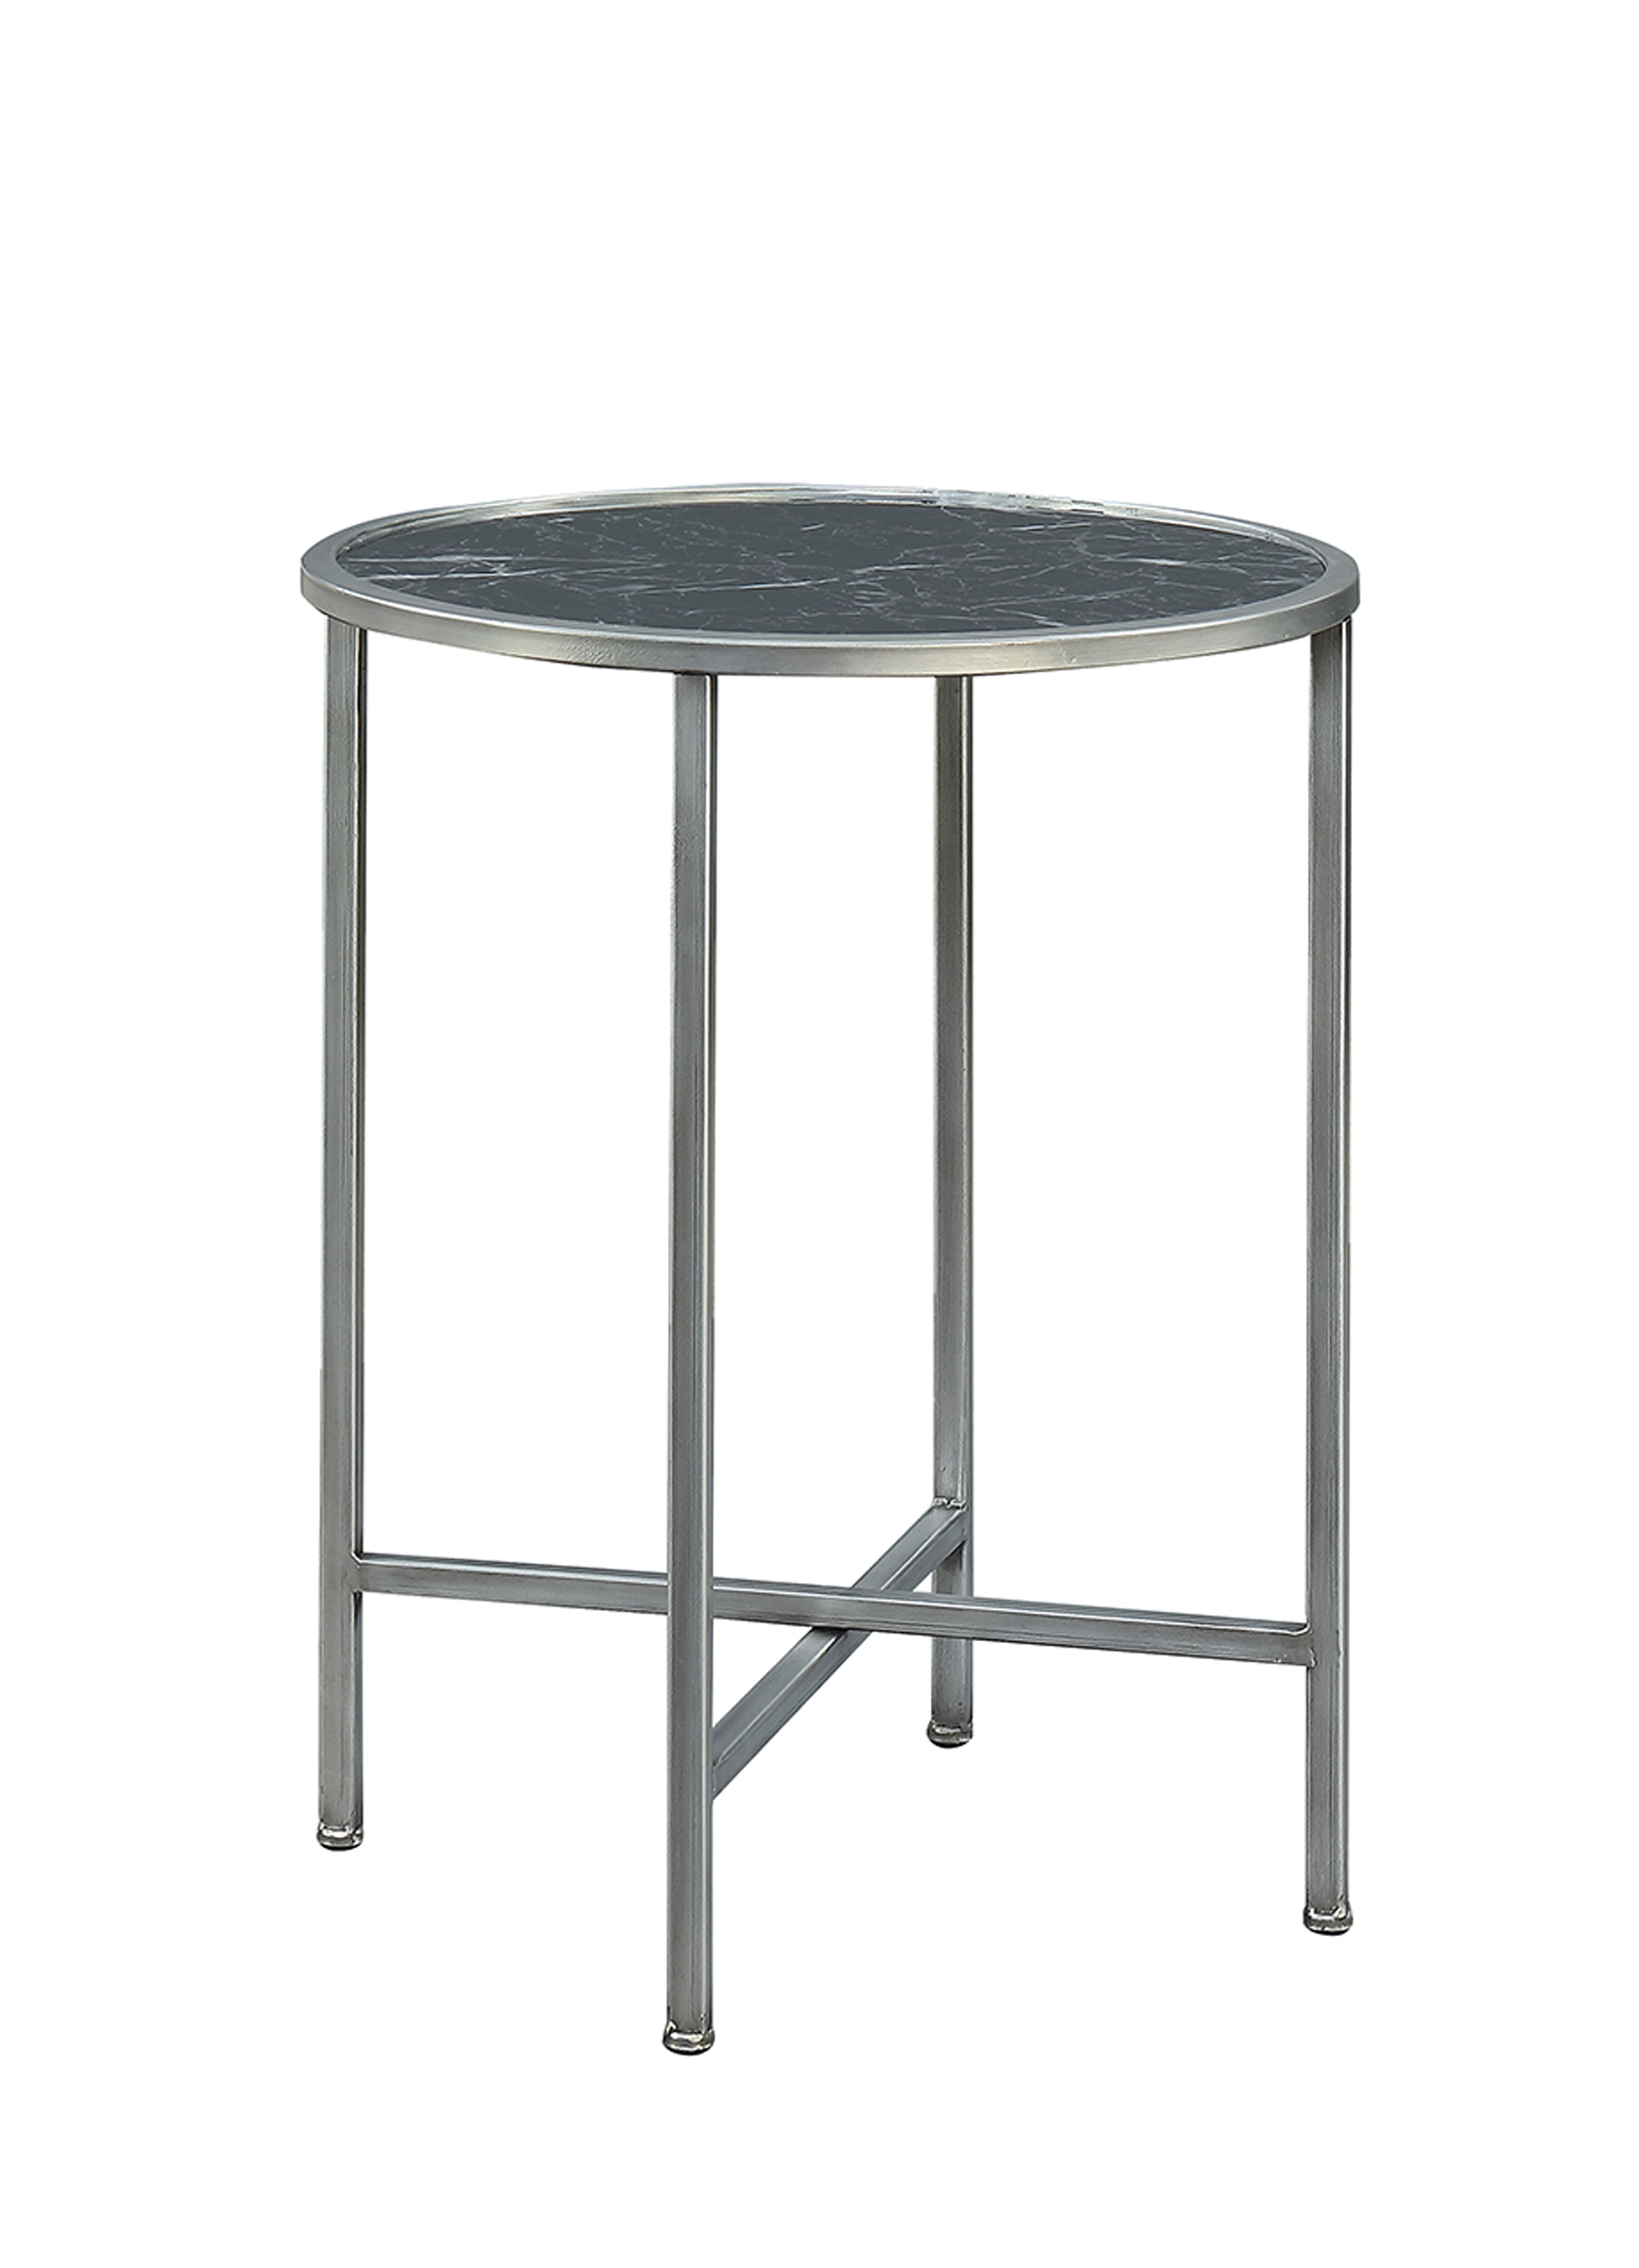 Convenience Concepts 413455MBLS Gold Coast Faux Marble Round End Table in Black Faux Marble Silver